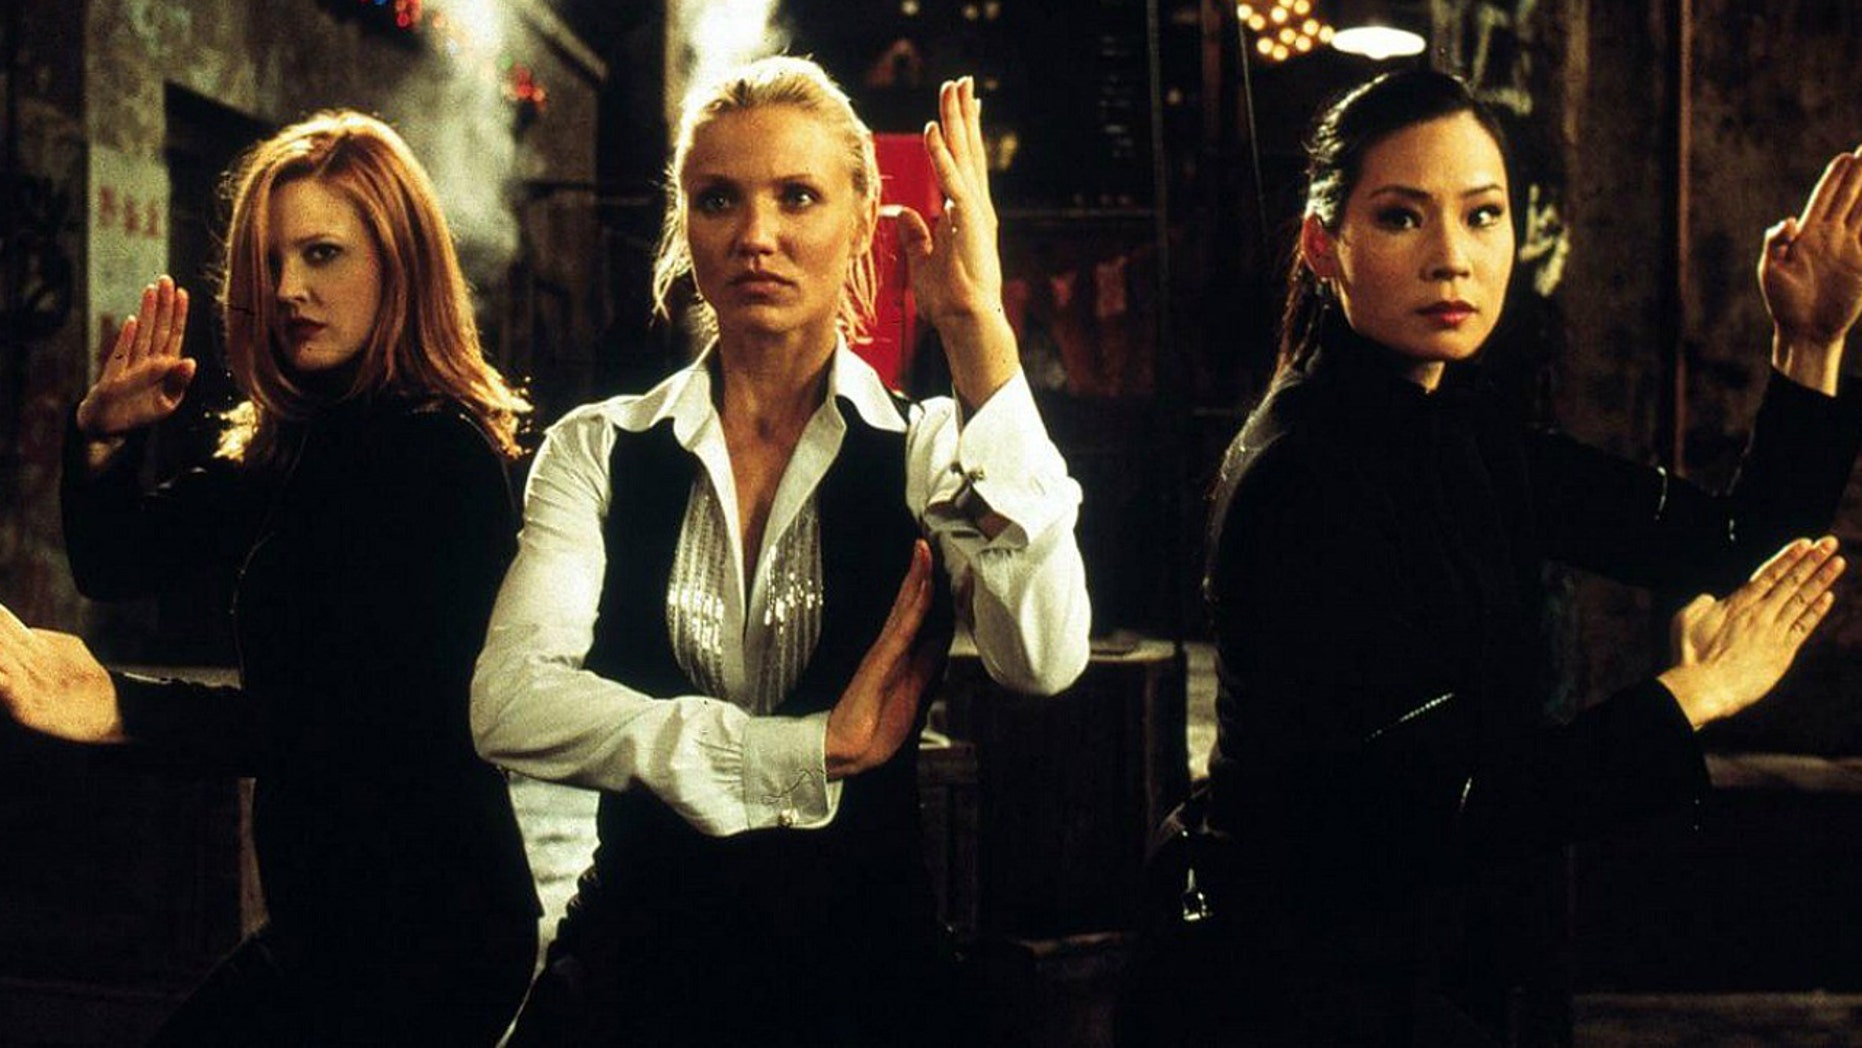 """Original """"Charlie's Angels,"""" Lucy Liu, actress thinks that the new version of the film, directed by Elizabeth Banks, will be a great move for women."""